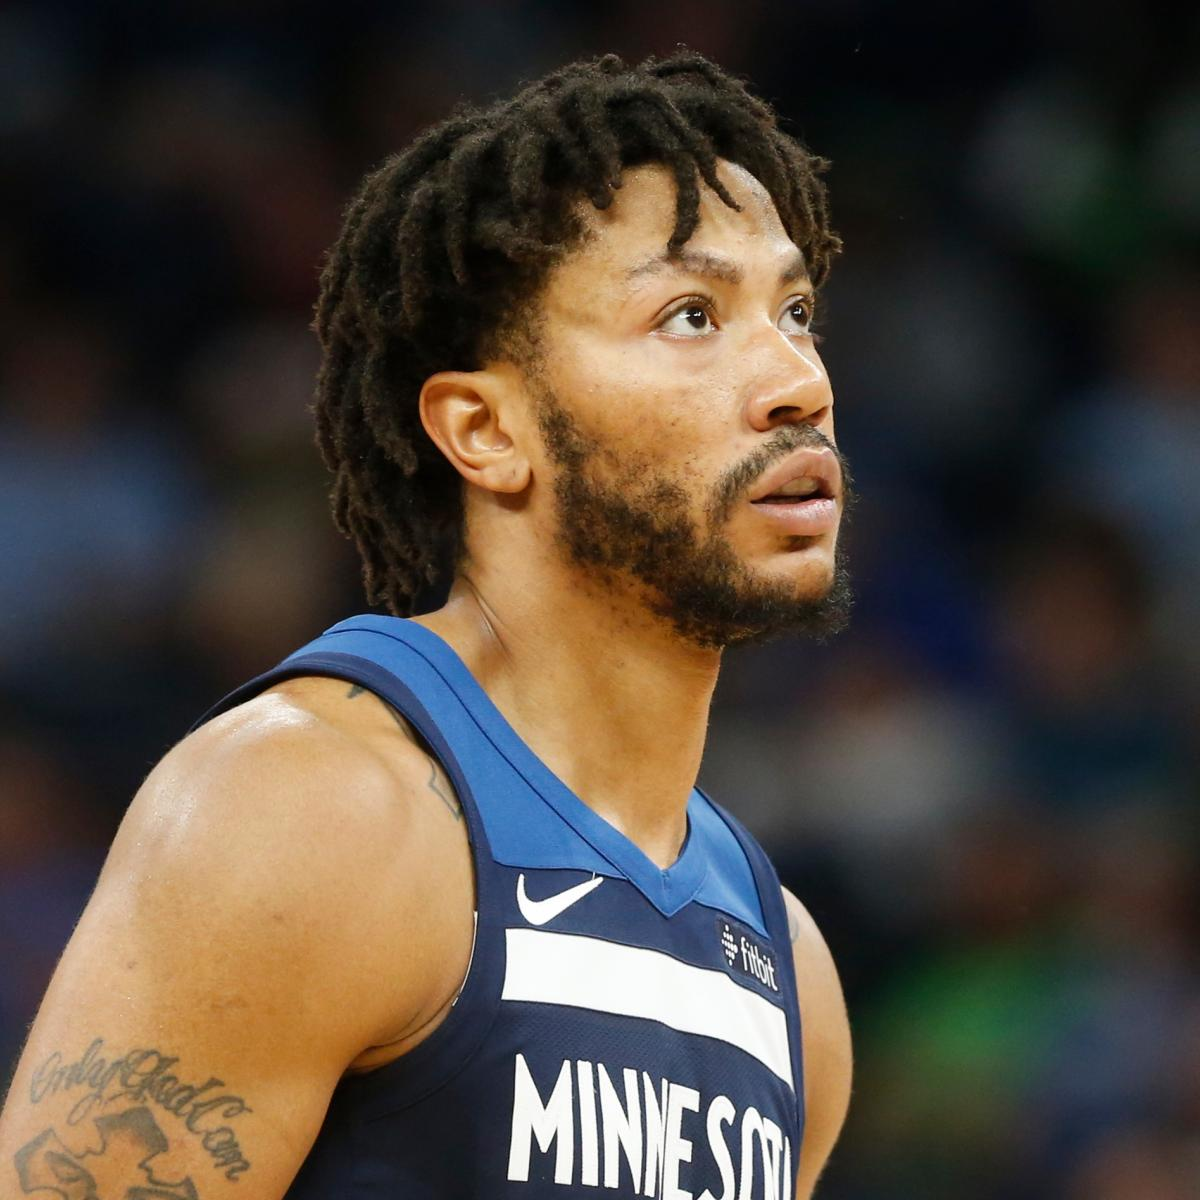 0137ac6dacb2 Derrick Rose Announces  400K  Rose Scholars  College Tuition Program